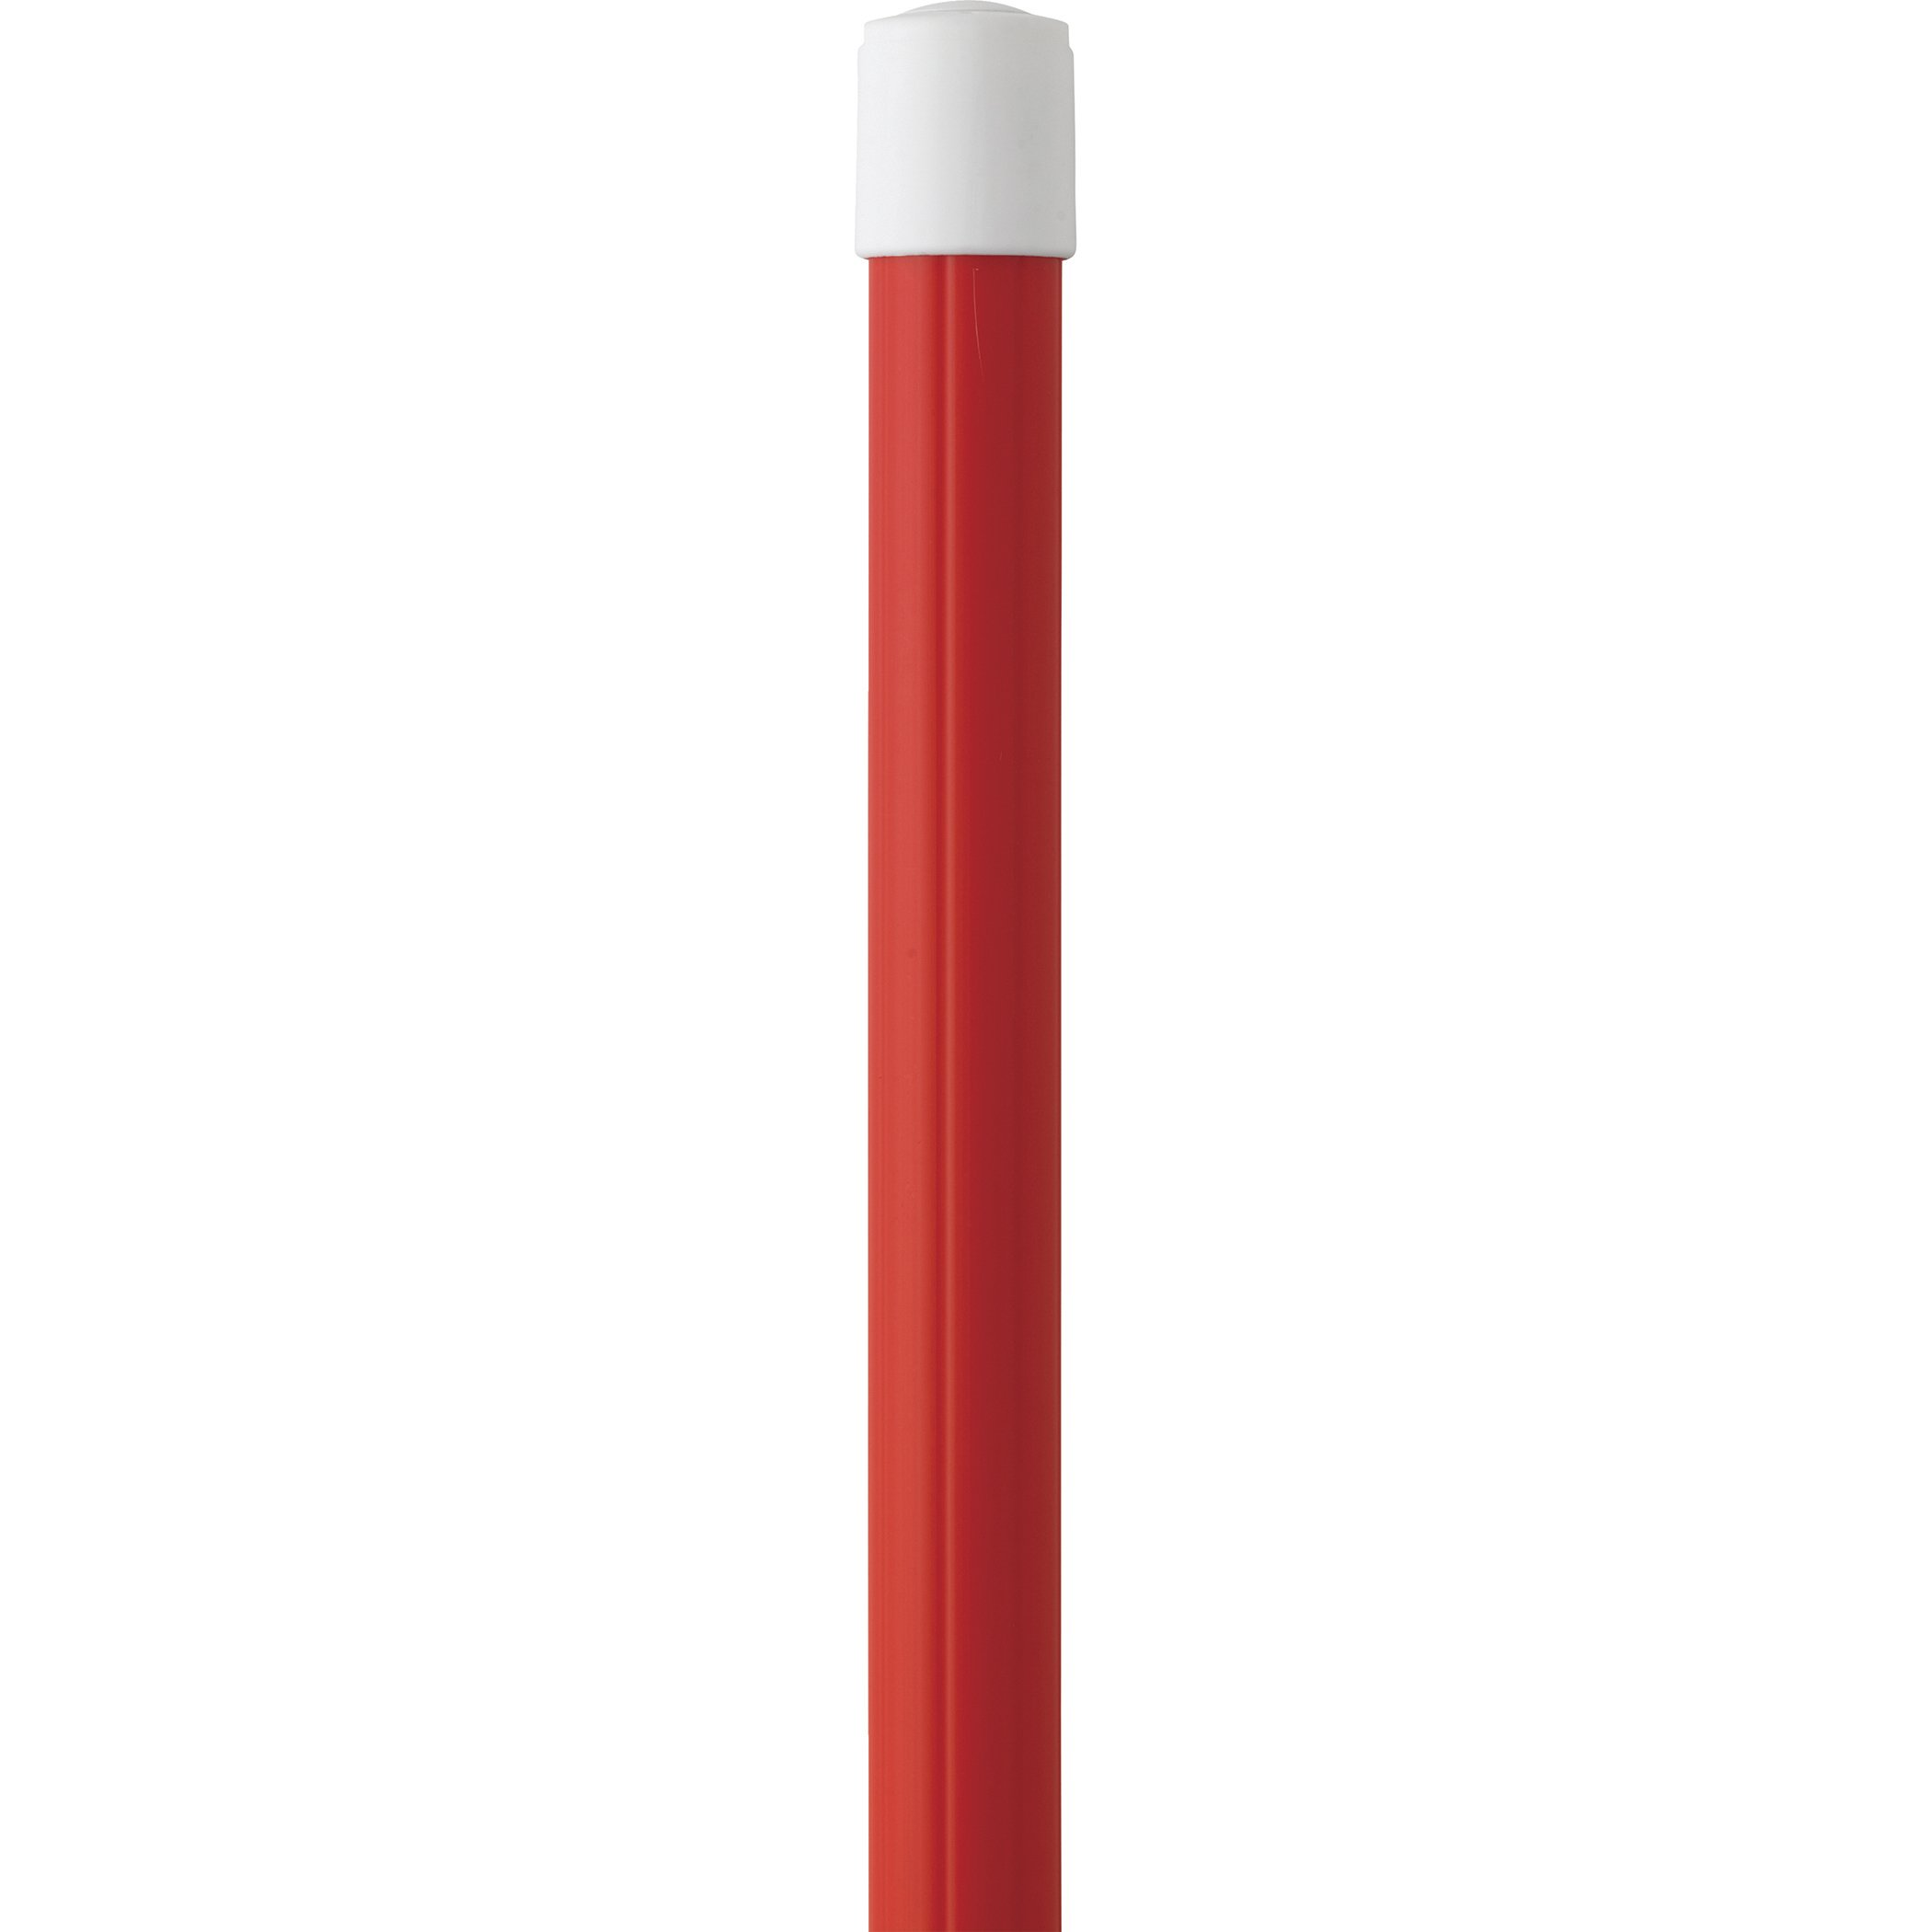 Vikan 29754 31.8''-112.50'' Telescopic Aluminum Extension Handle with Threaded Tip, 1.26'' Diameter, Red